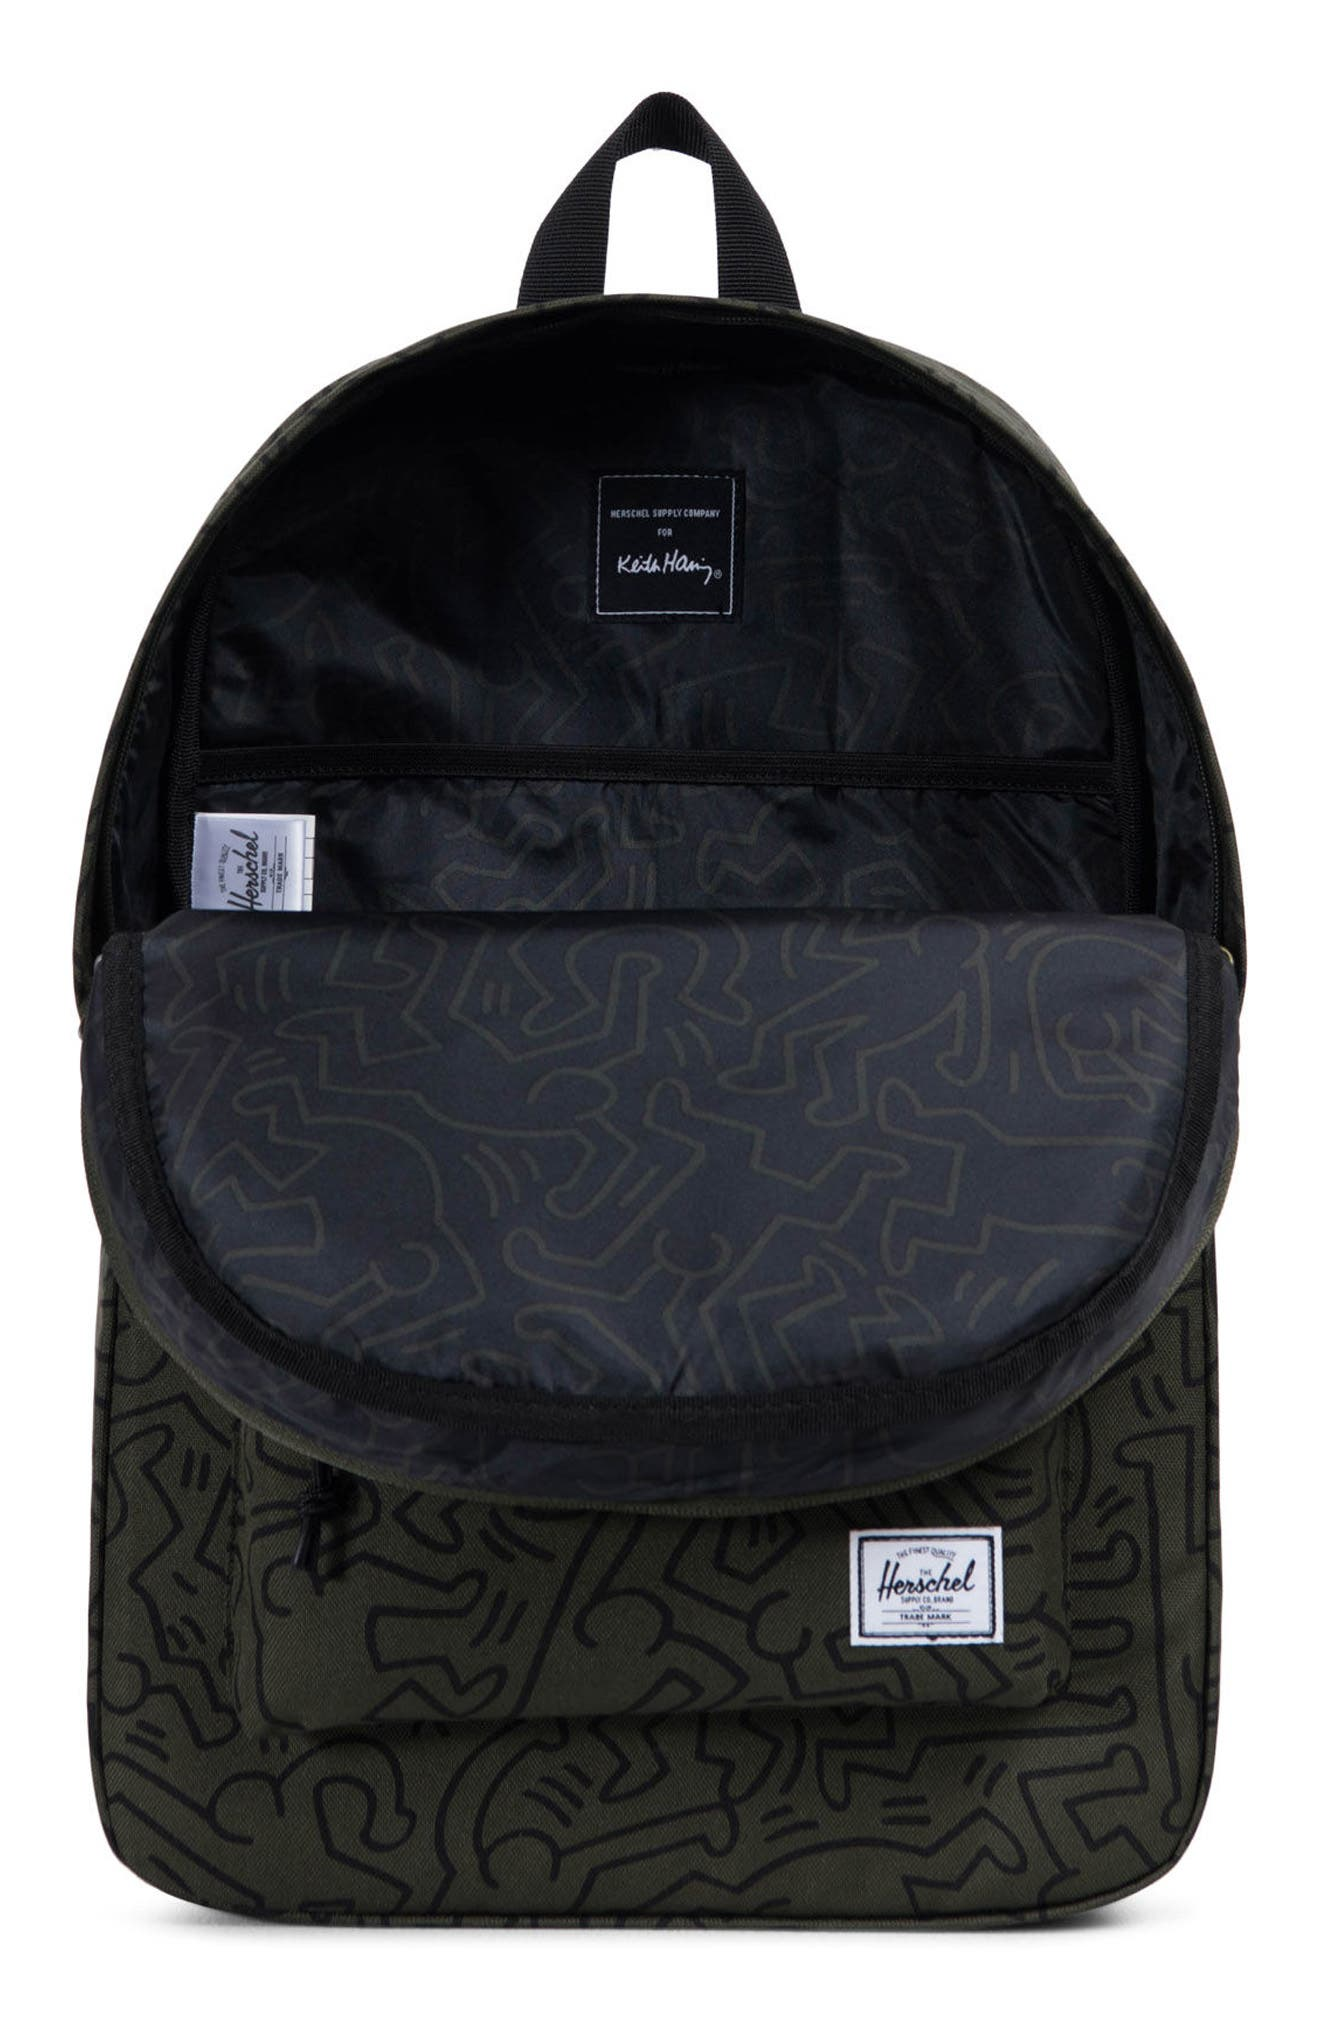 Winlaw x Keith Haring Backpack,                             Alternate thumbnail 3, color,